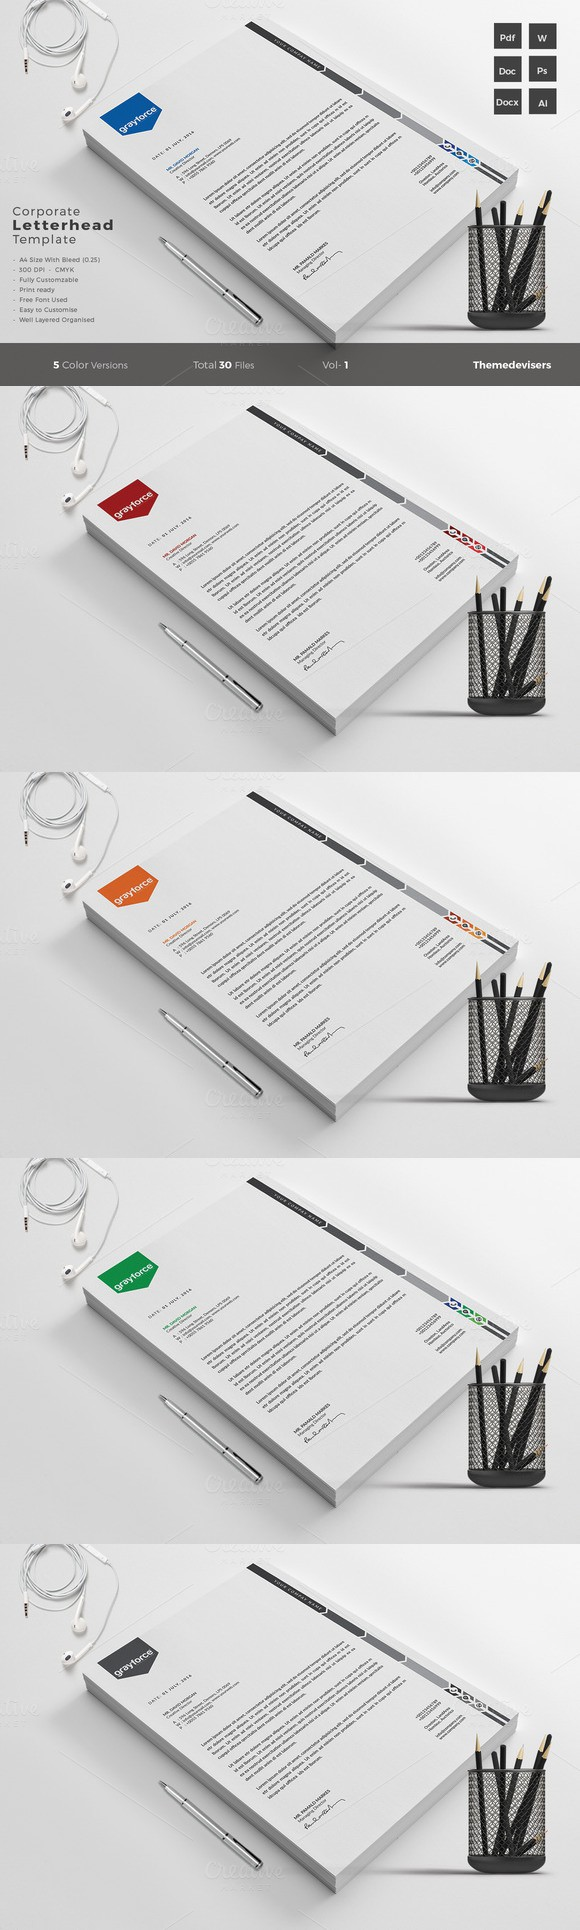 word templates stationery